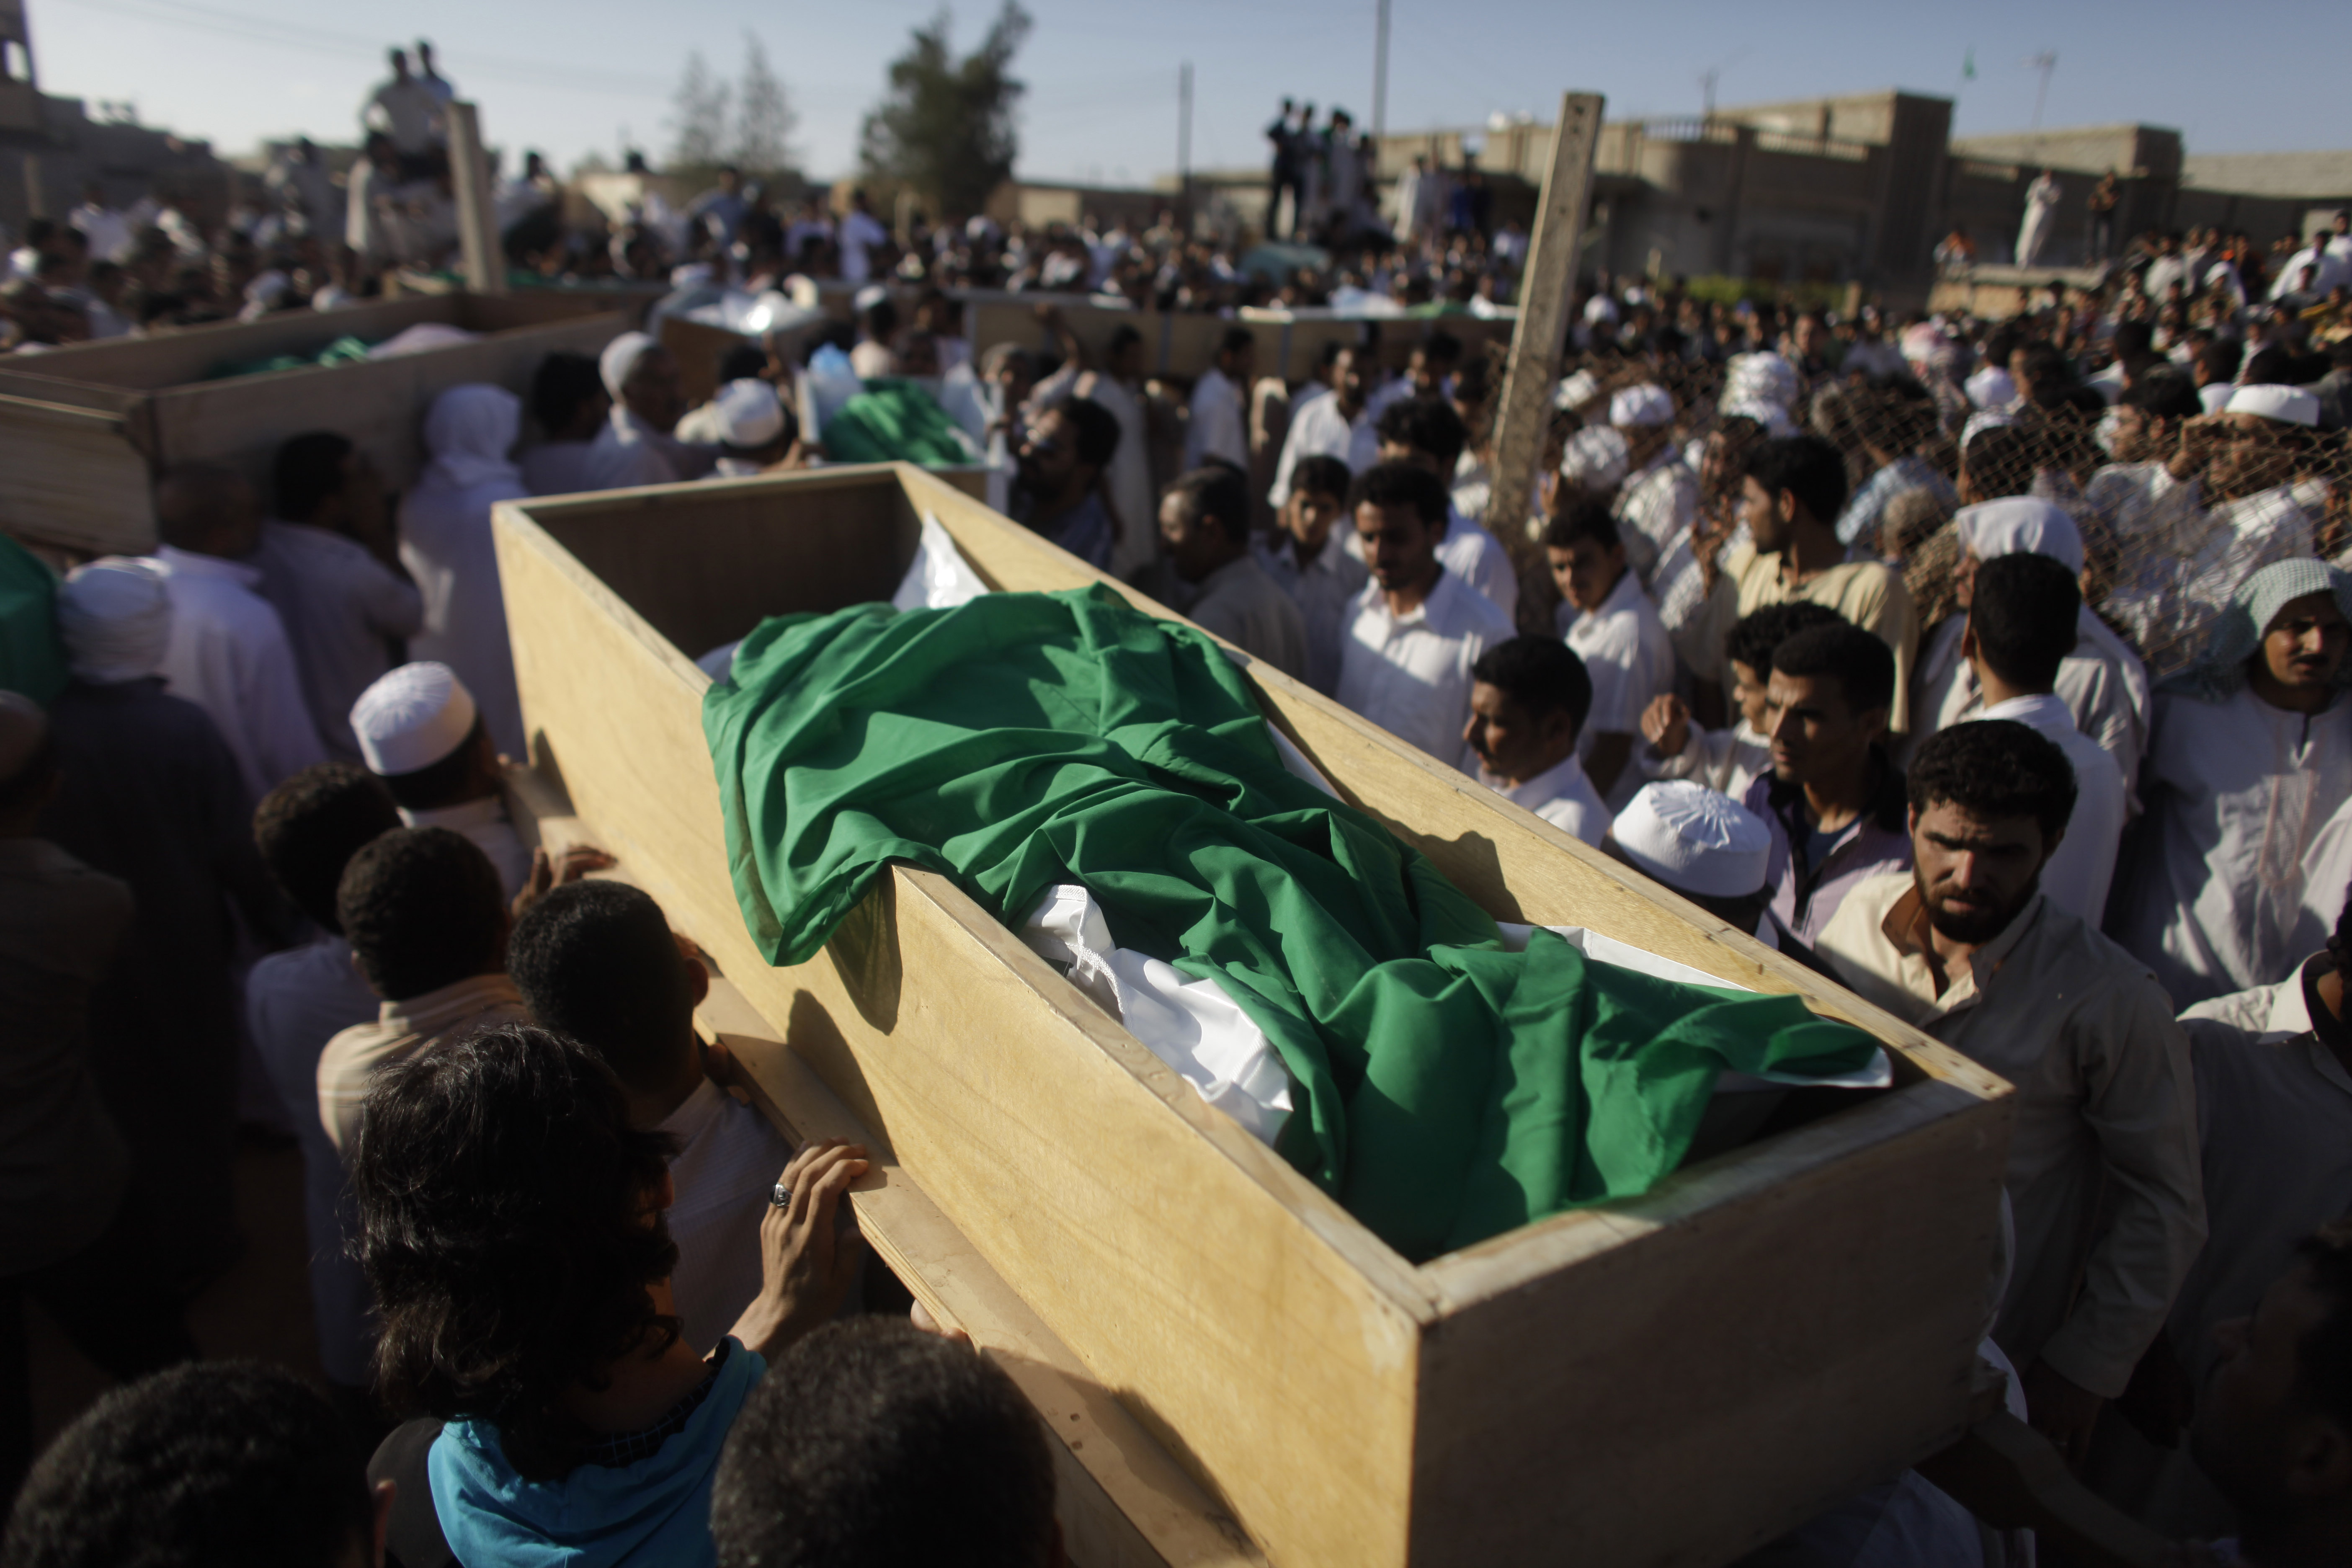 Men carry coffins during the burial of more than two dozen people after an alleged NATO bombing in the town of Majar, near in Zlitan, Libya, Aug. 9, 2011. Several homes were hit and reportedly 28 people, some of them women and children, were later buried. (AP/Dario Lopez-Mills)